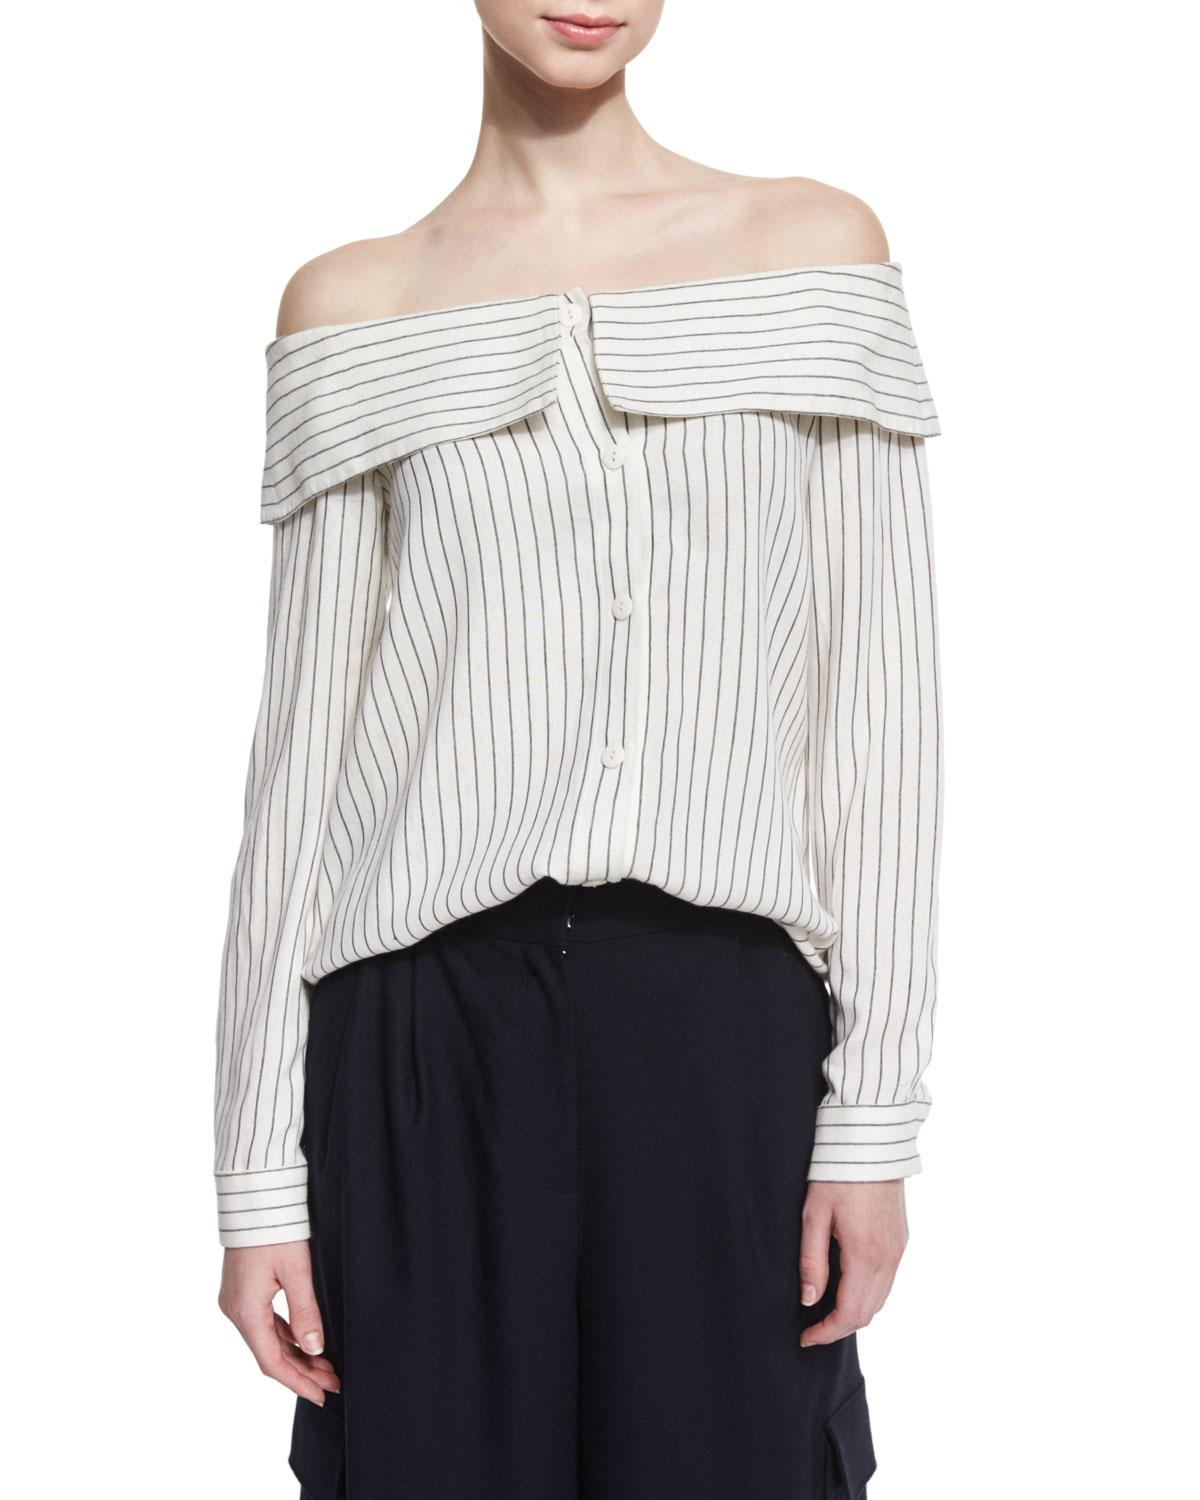 Tibi Frederic Off-The-Shoulder Striped Top, Ivory/Black In Ivory/Black Mu